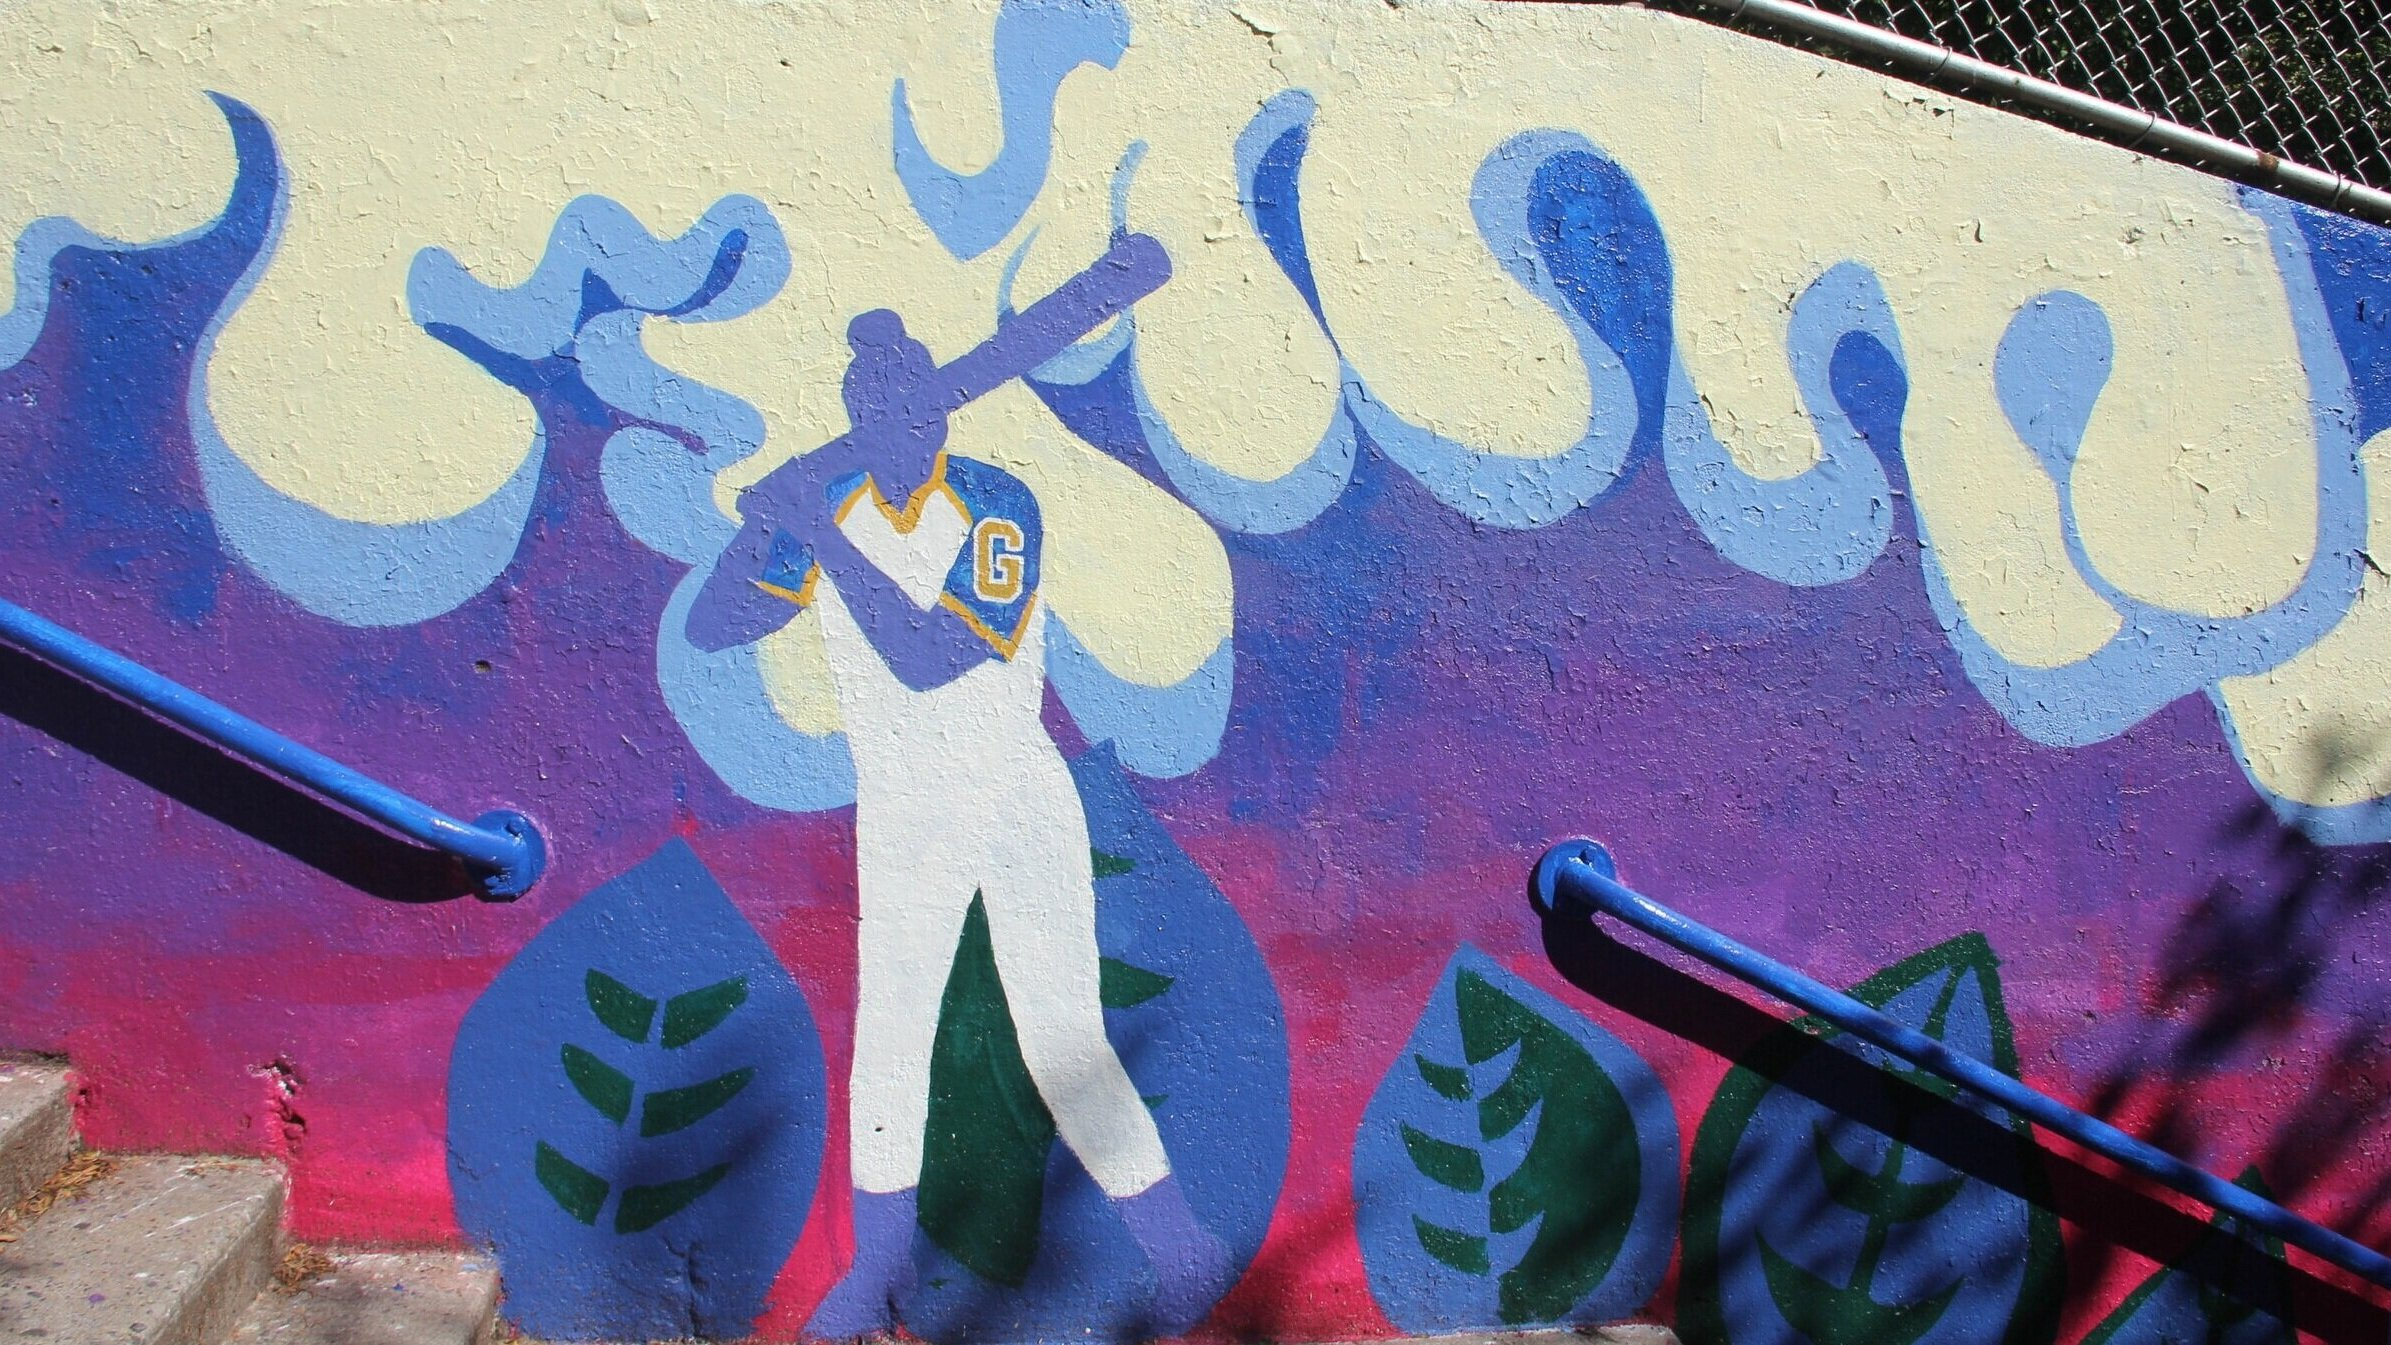 Sunset - The murals flanking the north stairway are dominated by abstract tropical plants and swirling clouds in shades of purple and blue, and features silhouettes of students engaged in study, public speaking and sports.